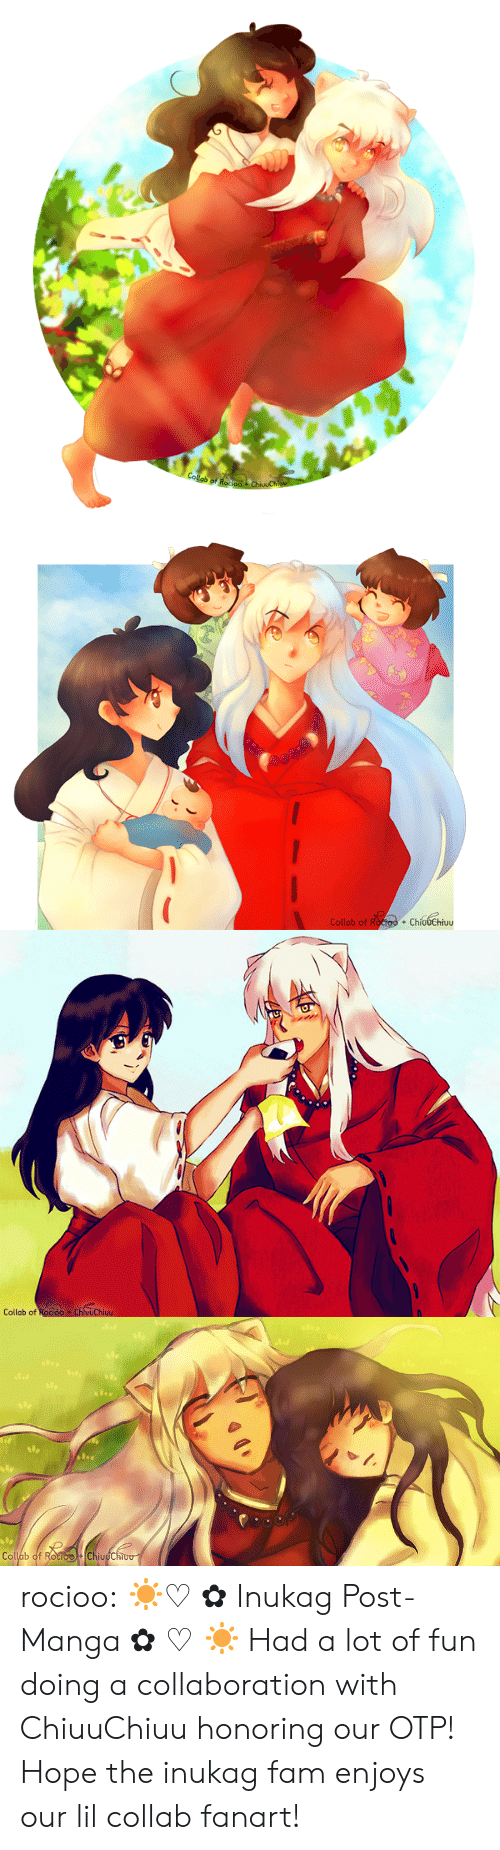 Fam, Target, and Tumblr: Collab of Roo  ChivuChi   Collab of Roctoo + ChíudChiuu  +   Collab of Rocioo ChluuChiuu   Op  Collab of RocioChiuuChiou rocioo:  ☀♡ ✿ Inukag Post-Manga ✿ ♡ ☀ Had a lot of fun doing a collaboration with ChiuuChiuu honoring our OTP! Hope the inukag fam enjoys our lil collab fanart!